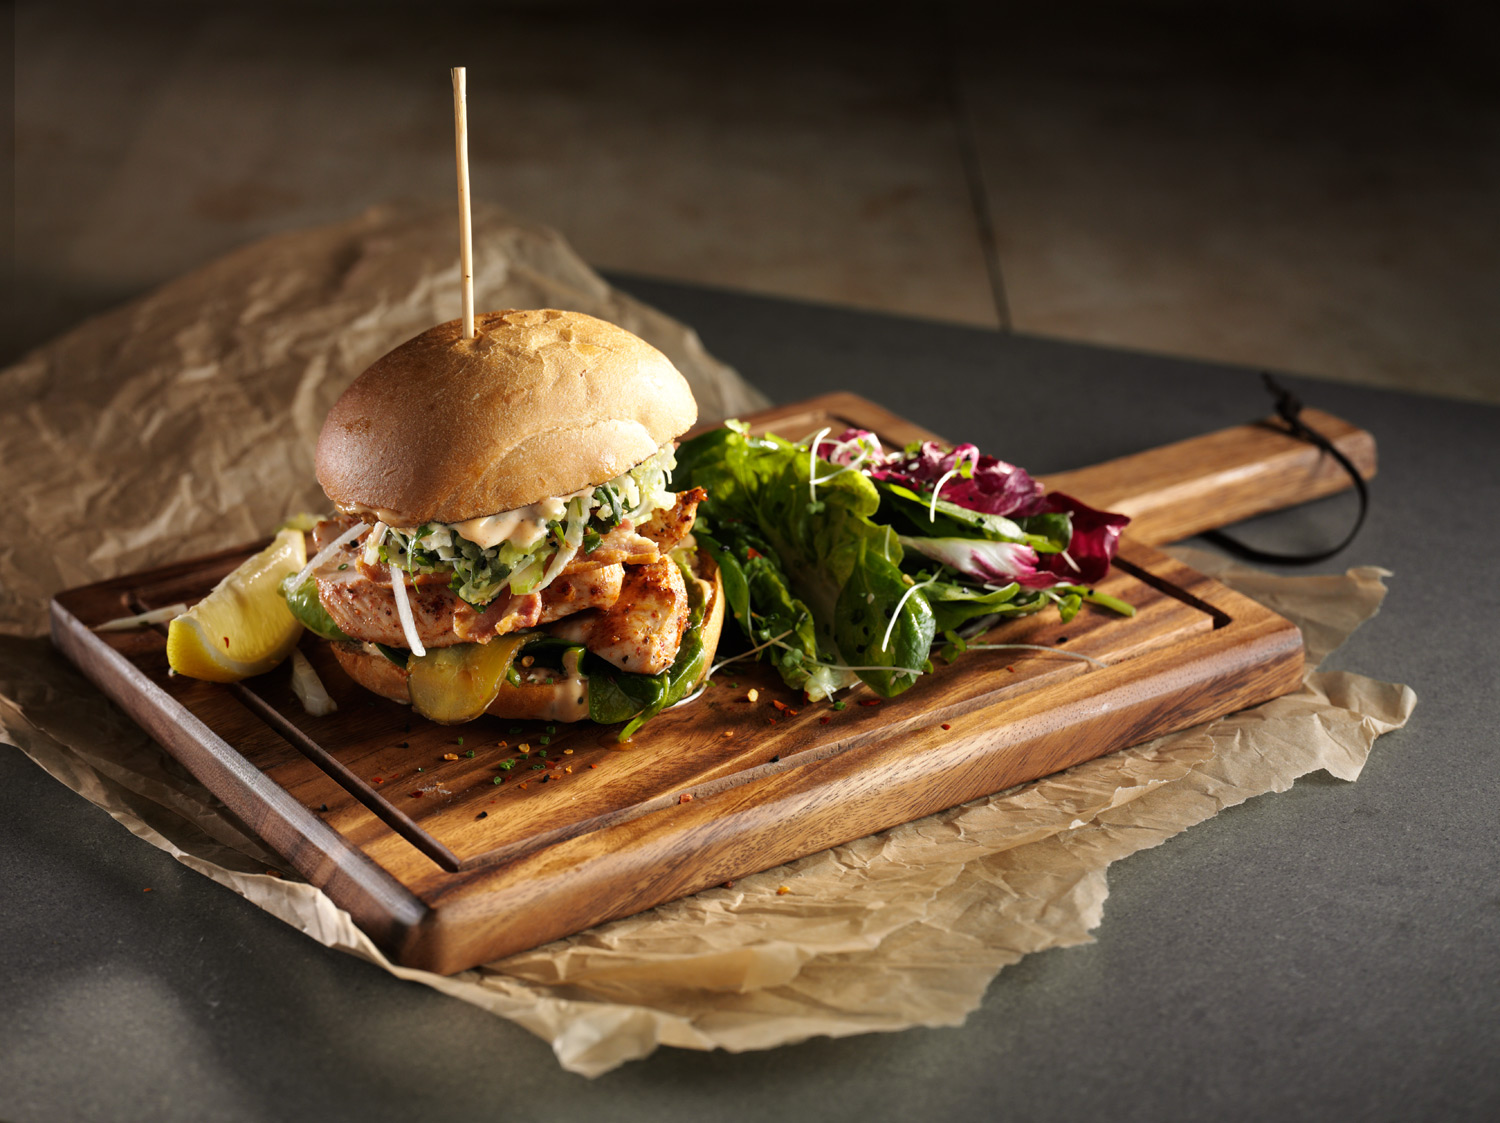 Flourish Bakery Chicken BLT Food and Drink Photography - Lux Studio